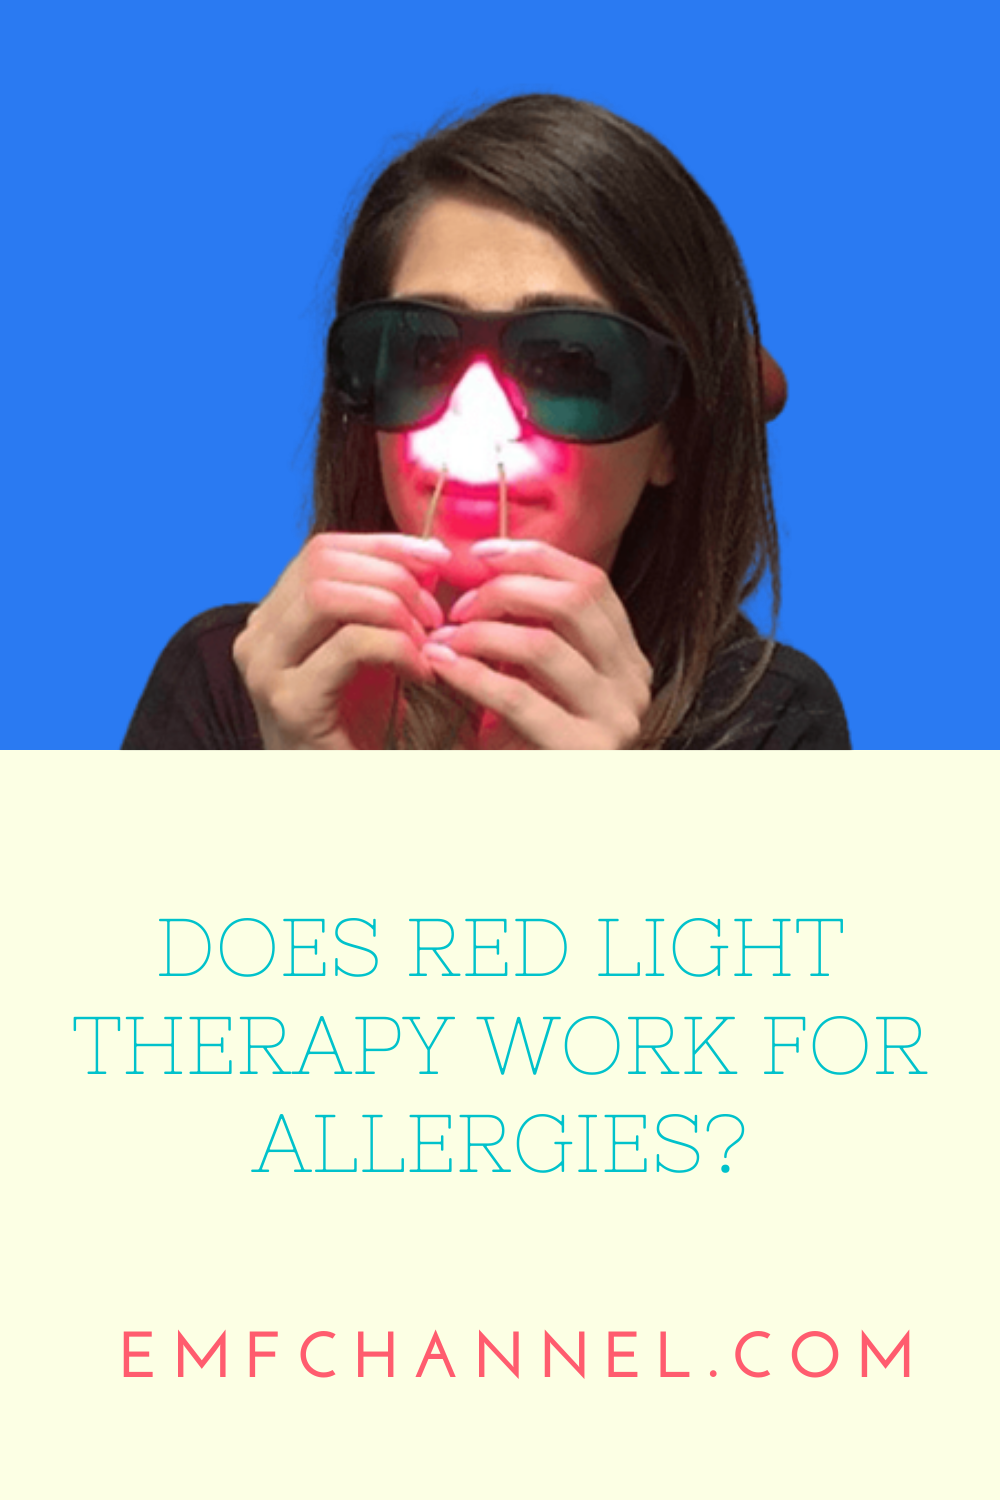 Does Red Light Therapy Work for Allergies?